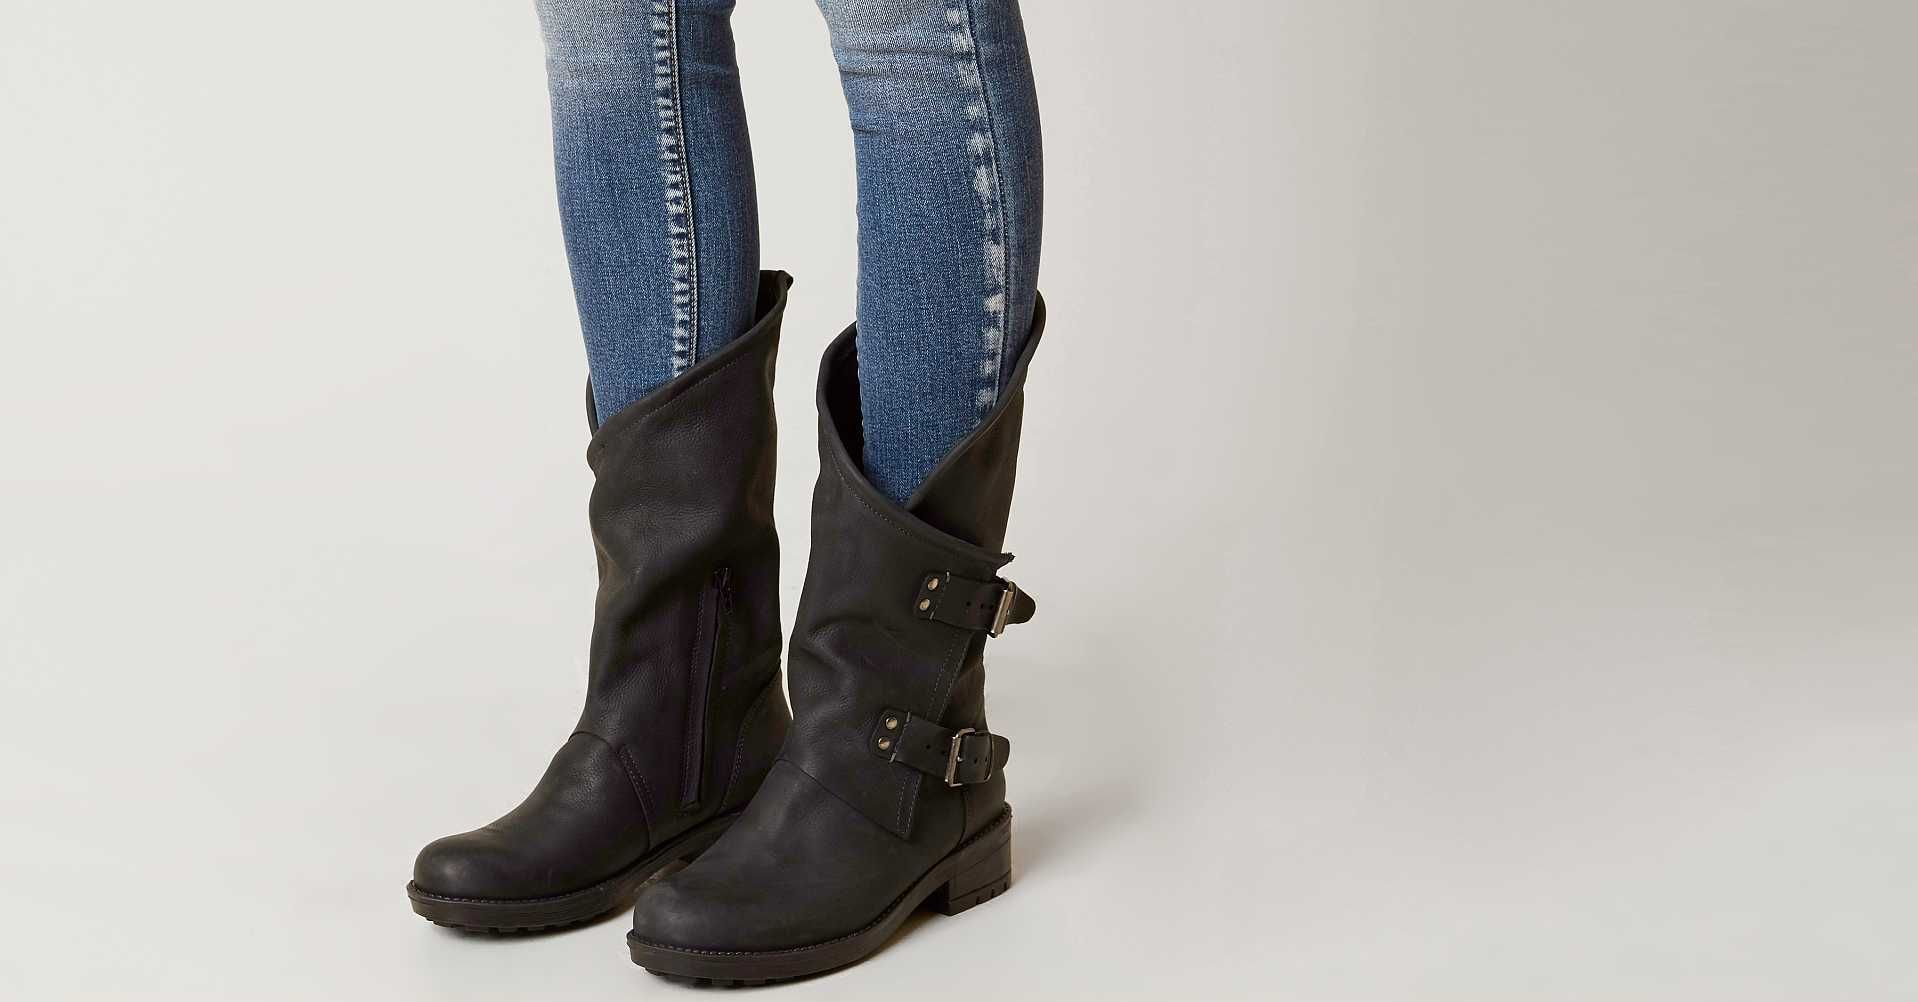 ffacb590532 Coolway Alida Boot - Women's Shoes in Black   Buckle   Shoes I need ...